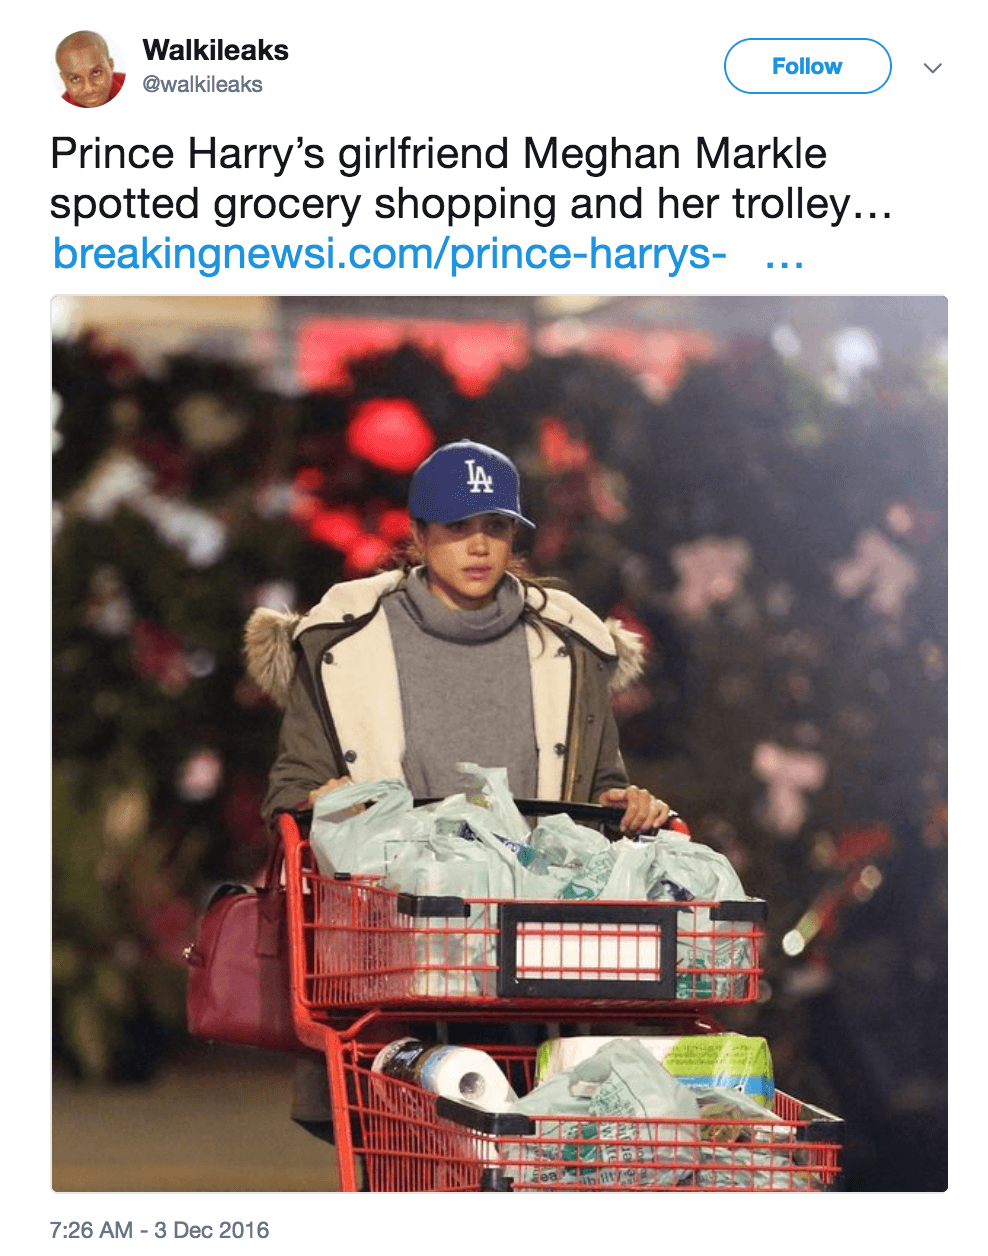 Meghan Markle grocery shopping